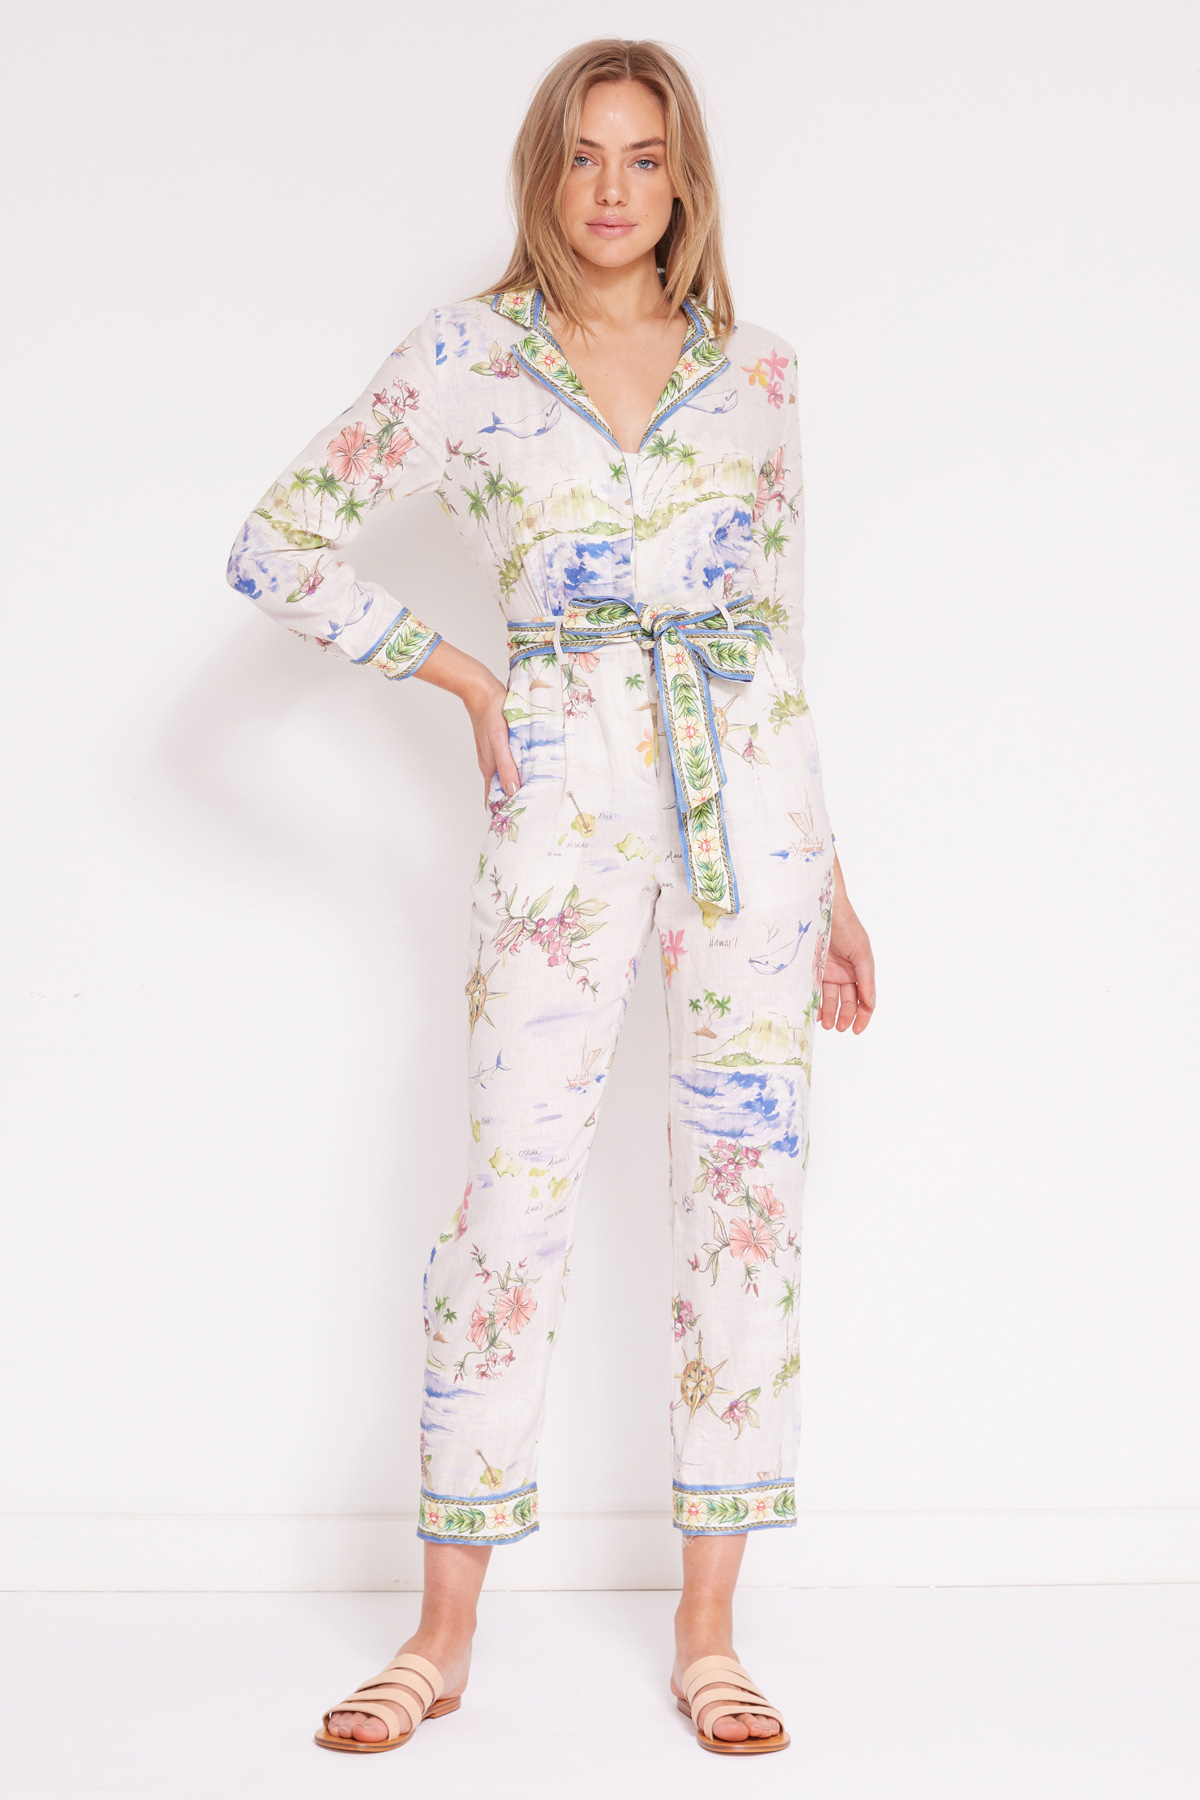 HAWAII CALLING LINEN LONG SLEEVE JUMPSUIT